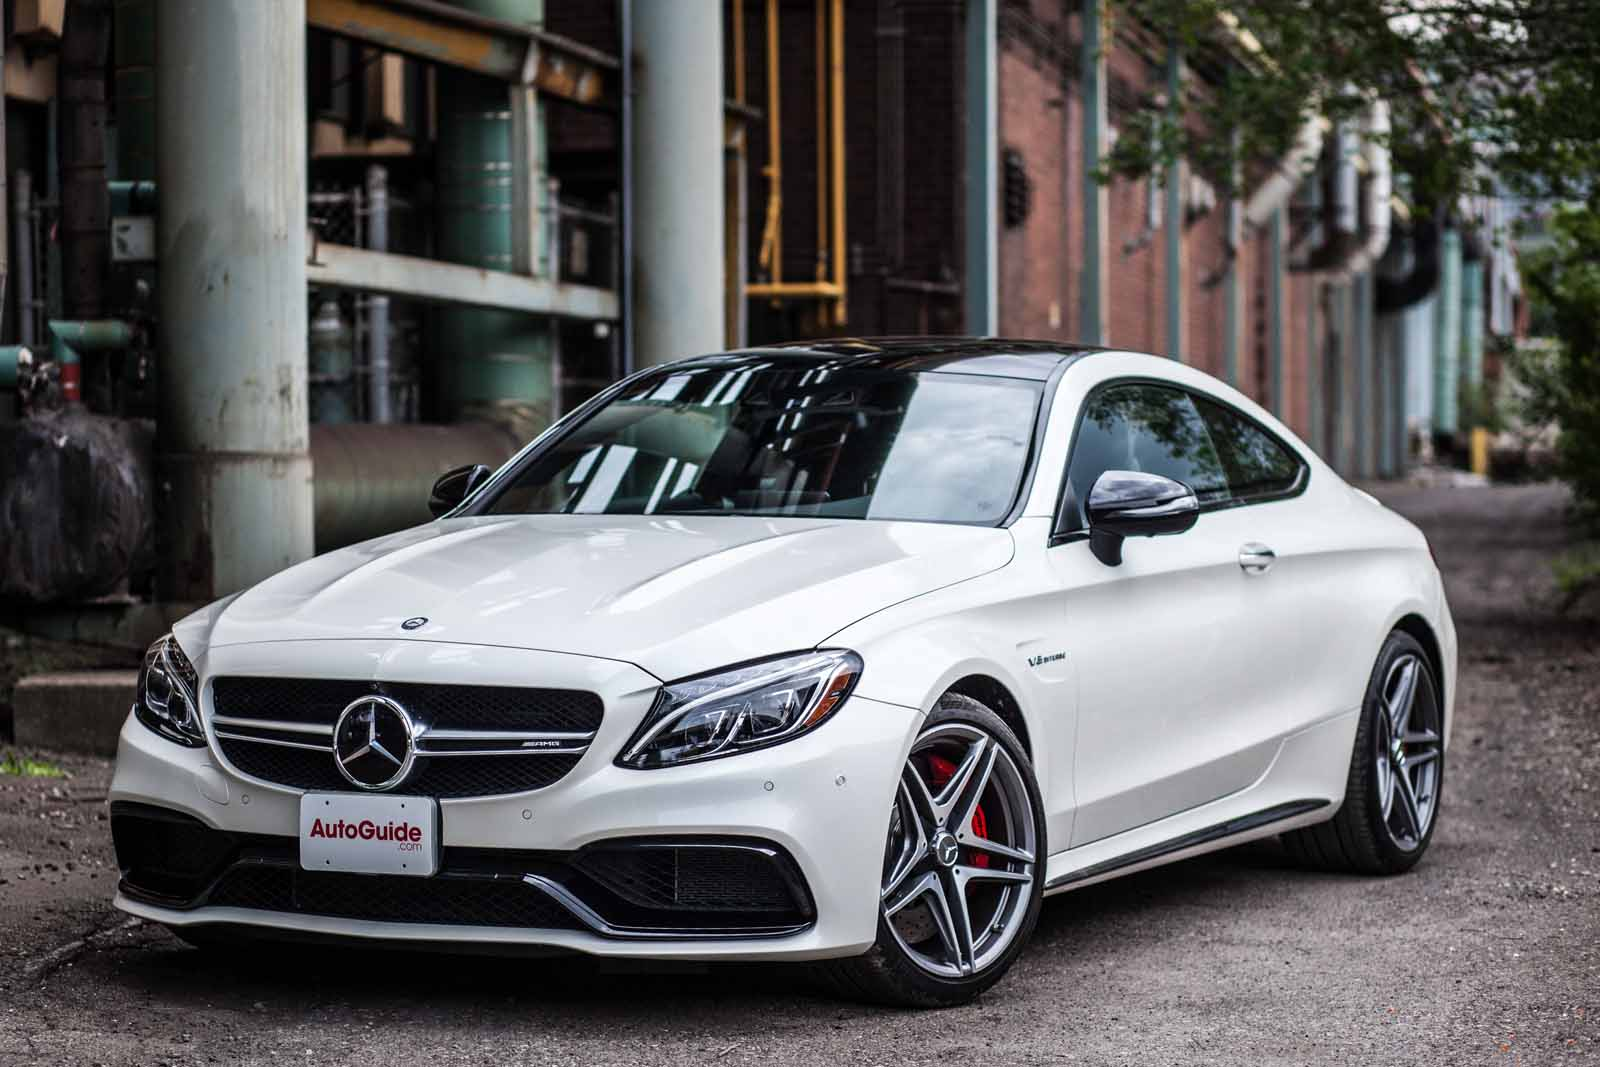 2017 mercedes amg c63 s coupe review for Mercedes benz c63 2017